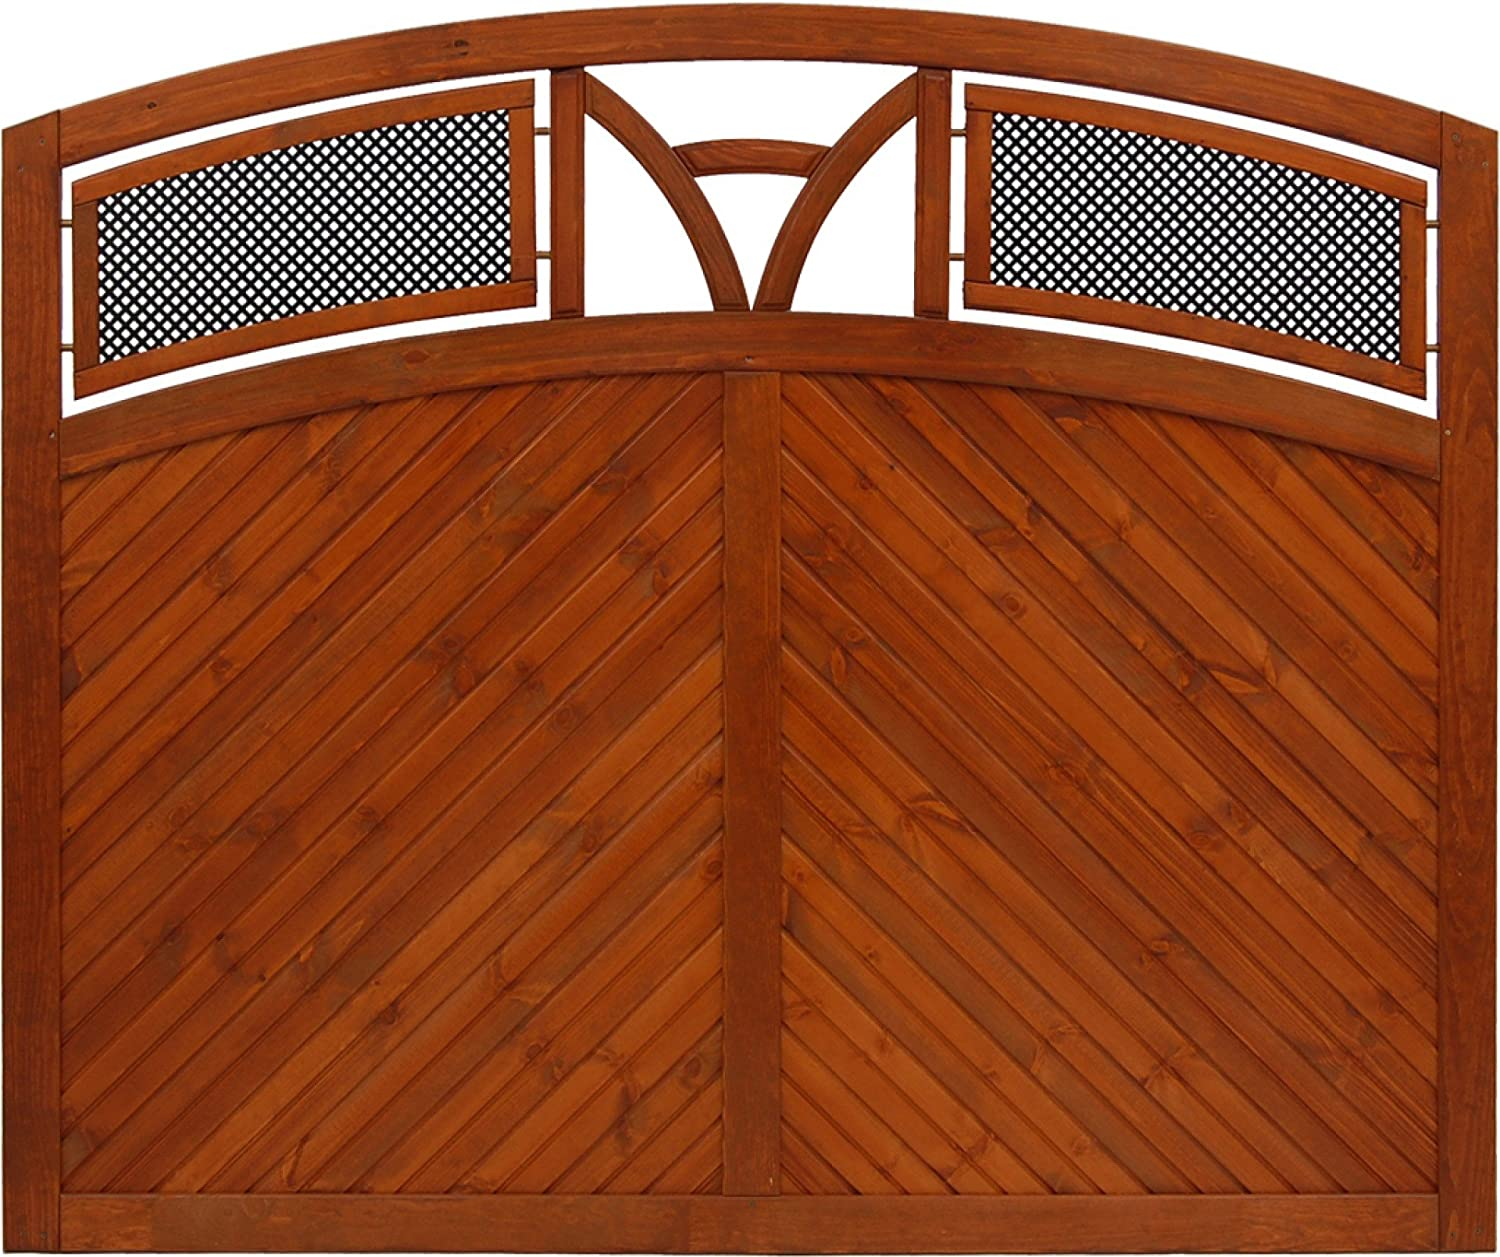 Andrewex wooden fence, 135 150 x 180 teak, privacy, fencing panel